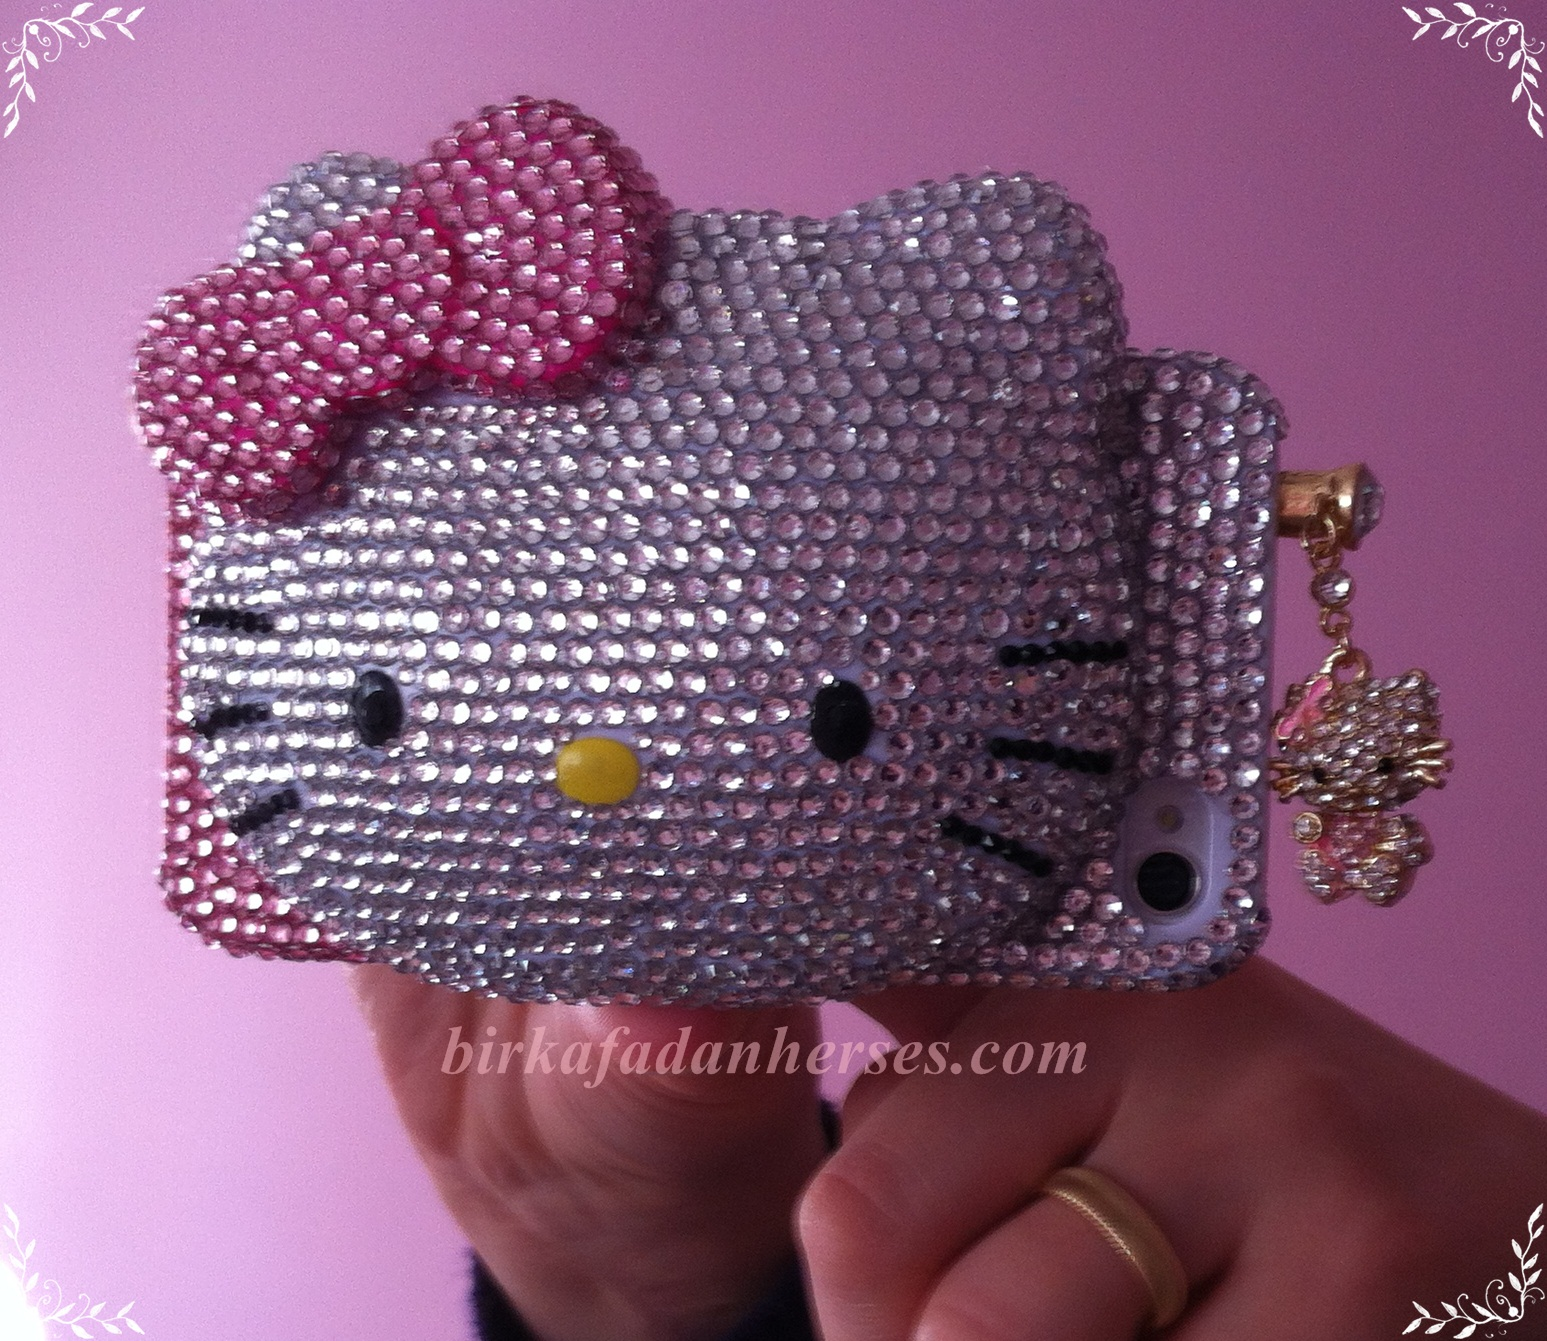 yeni hello kitty iphone 4 aksesuarlarım